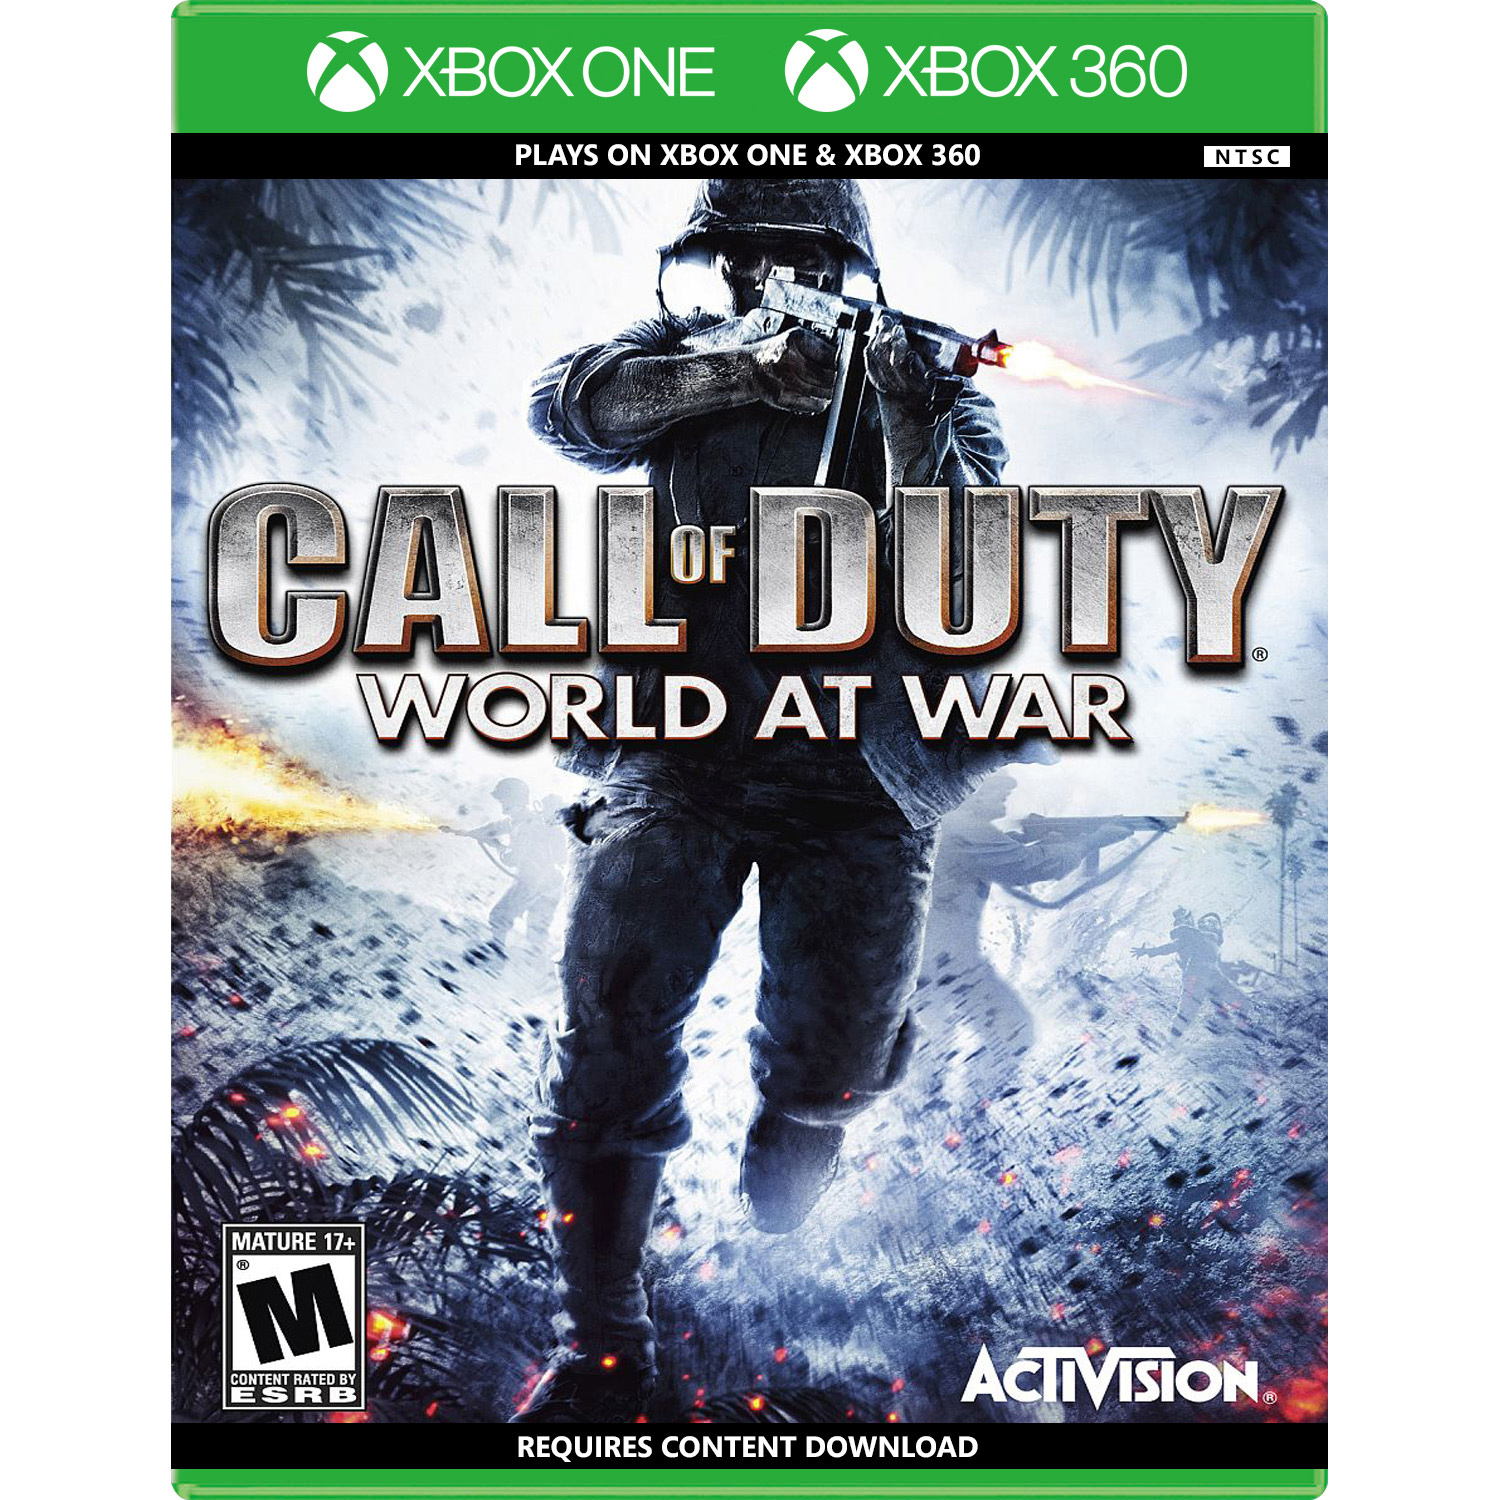 Details about Call of Duty: World at War (Backwards Compatible) Xbox 360  [Brand New]